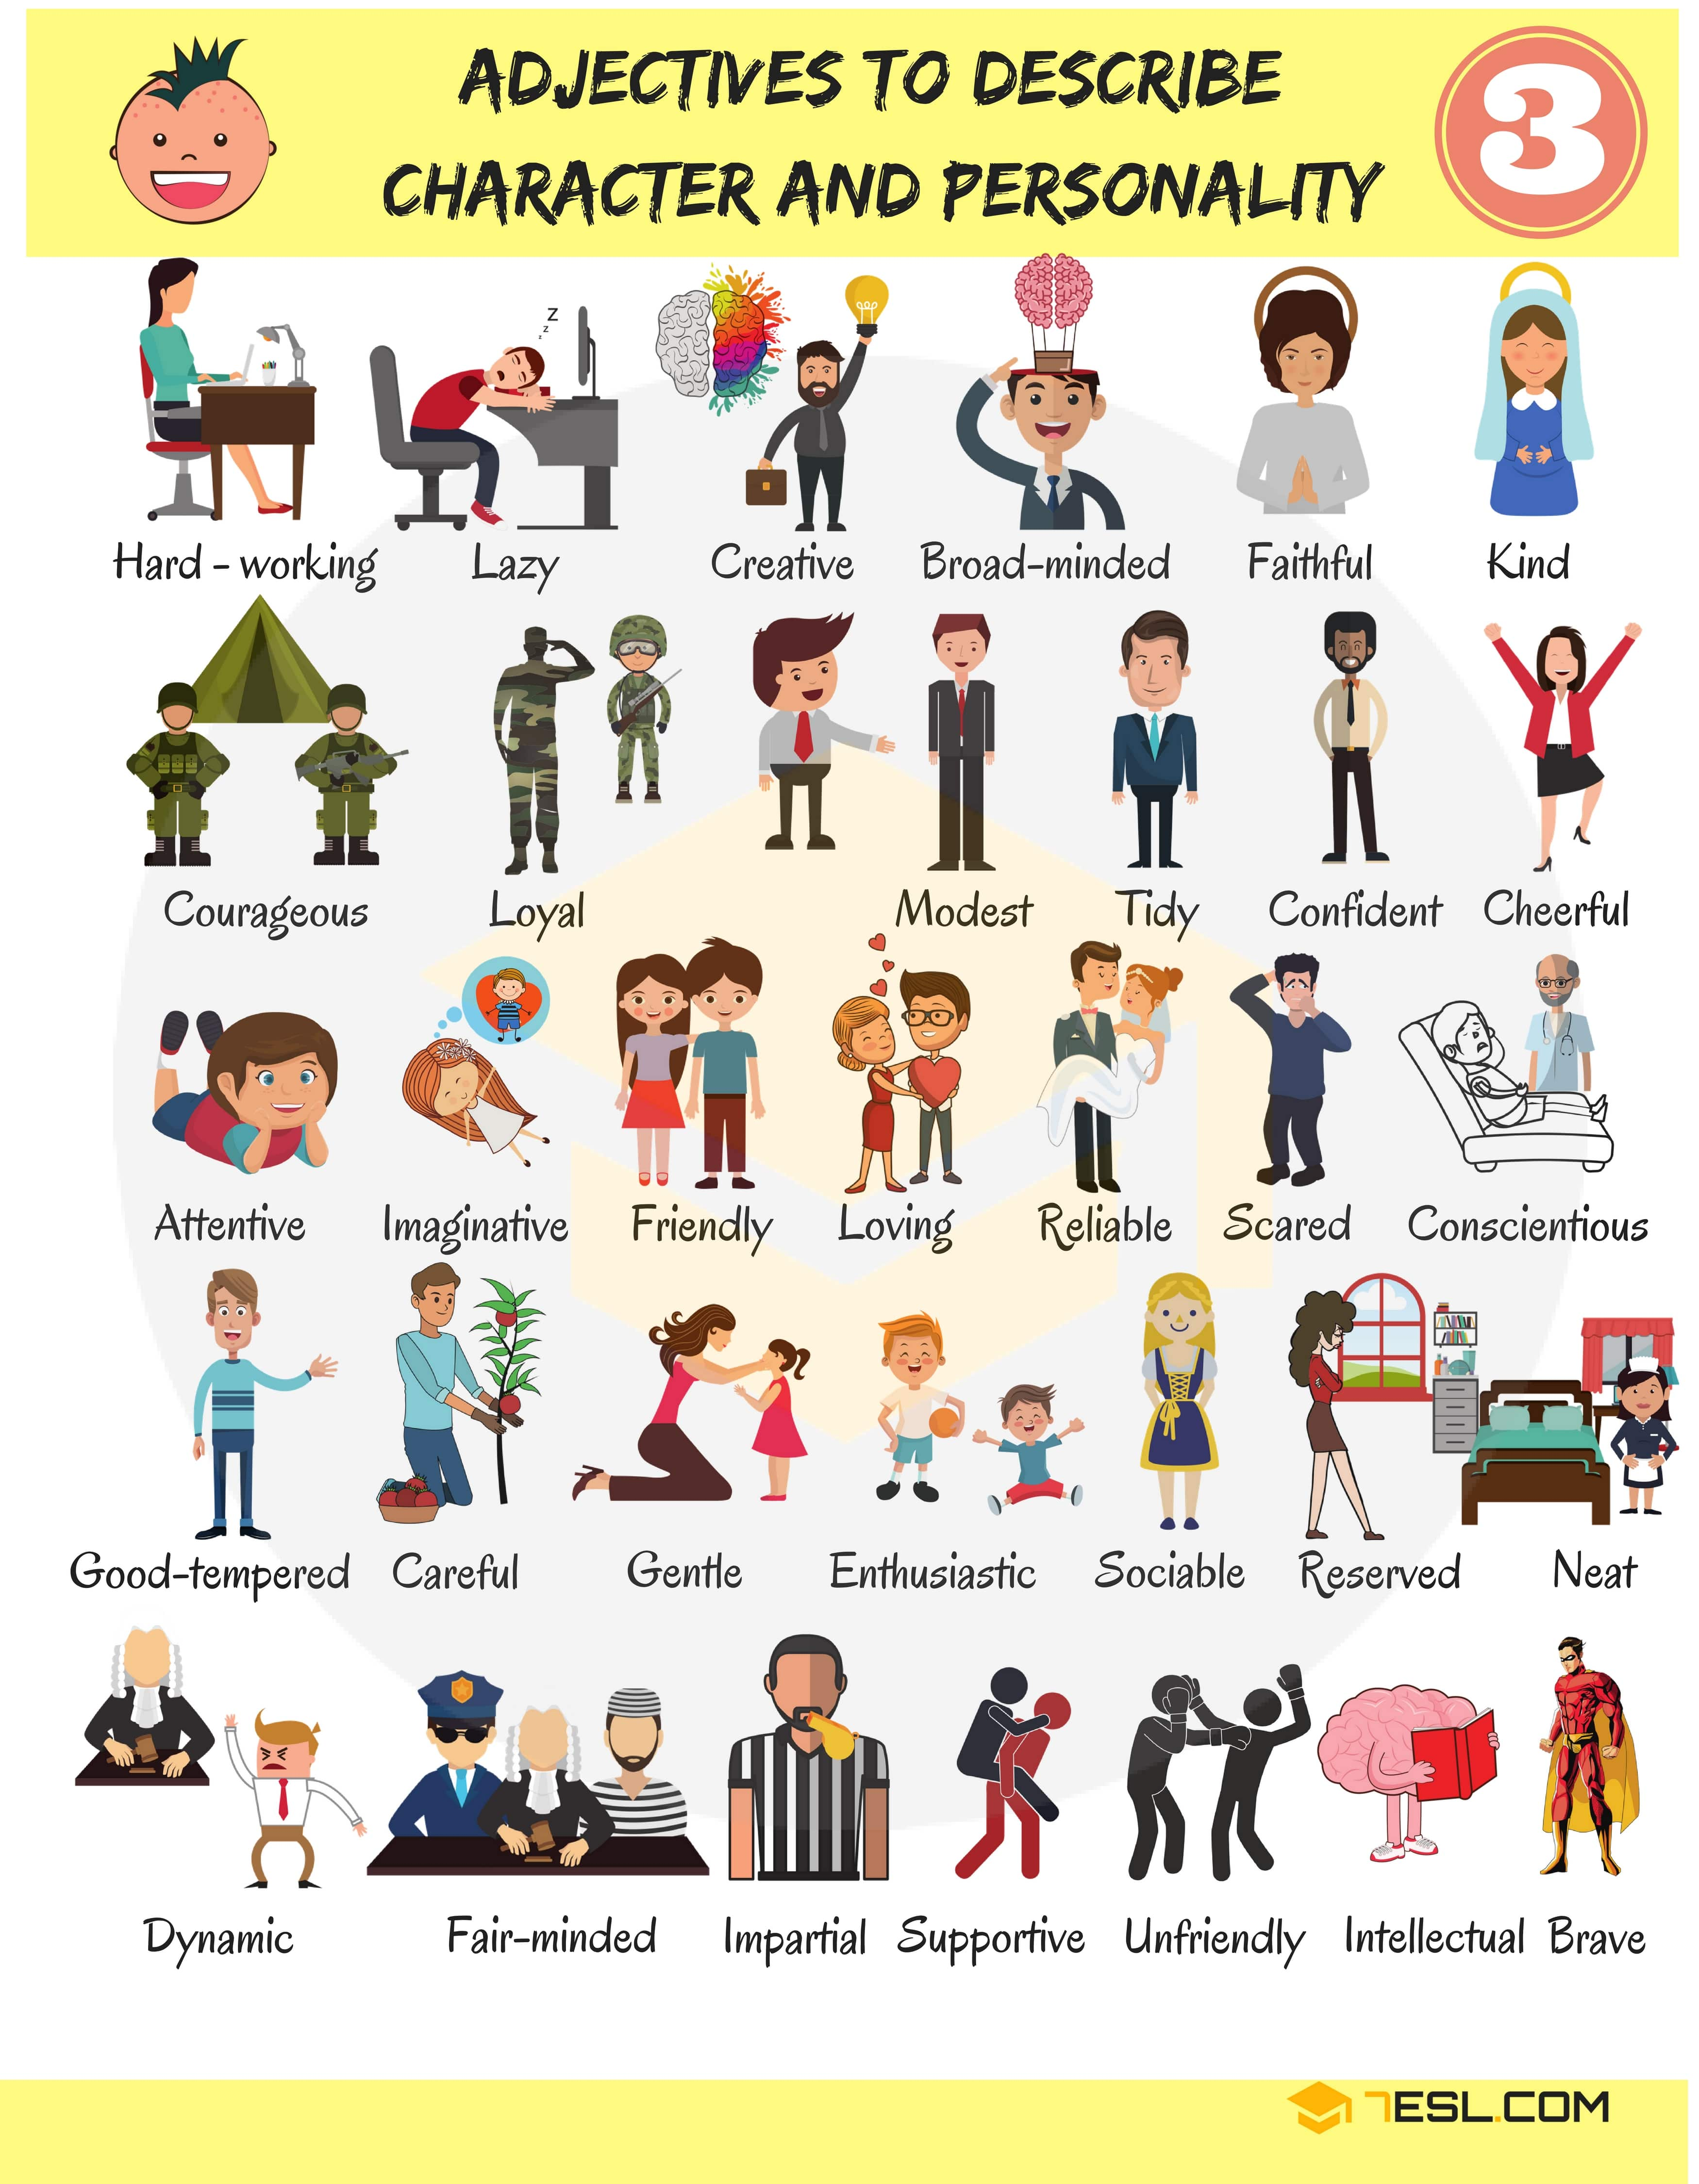 English Adjectives For Describing Character And